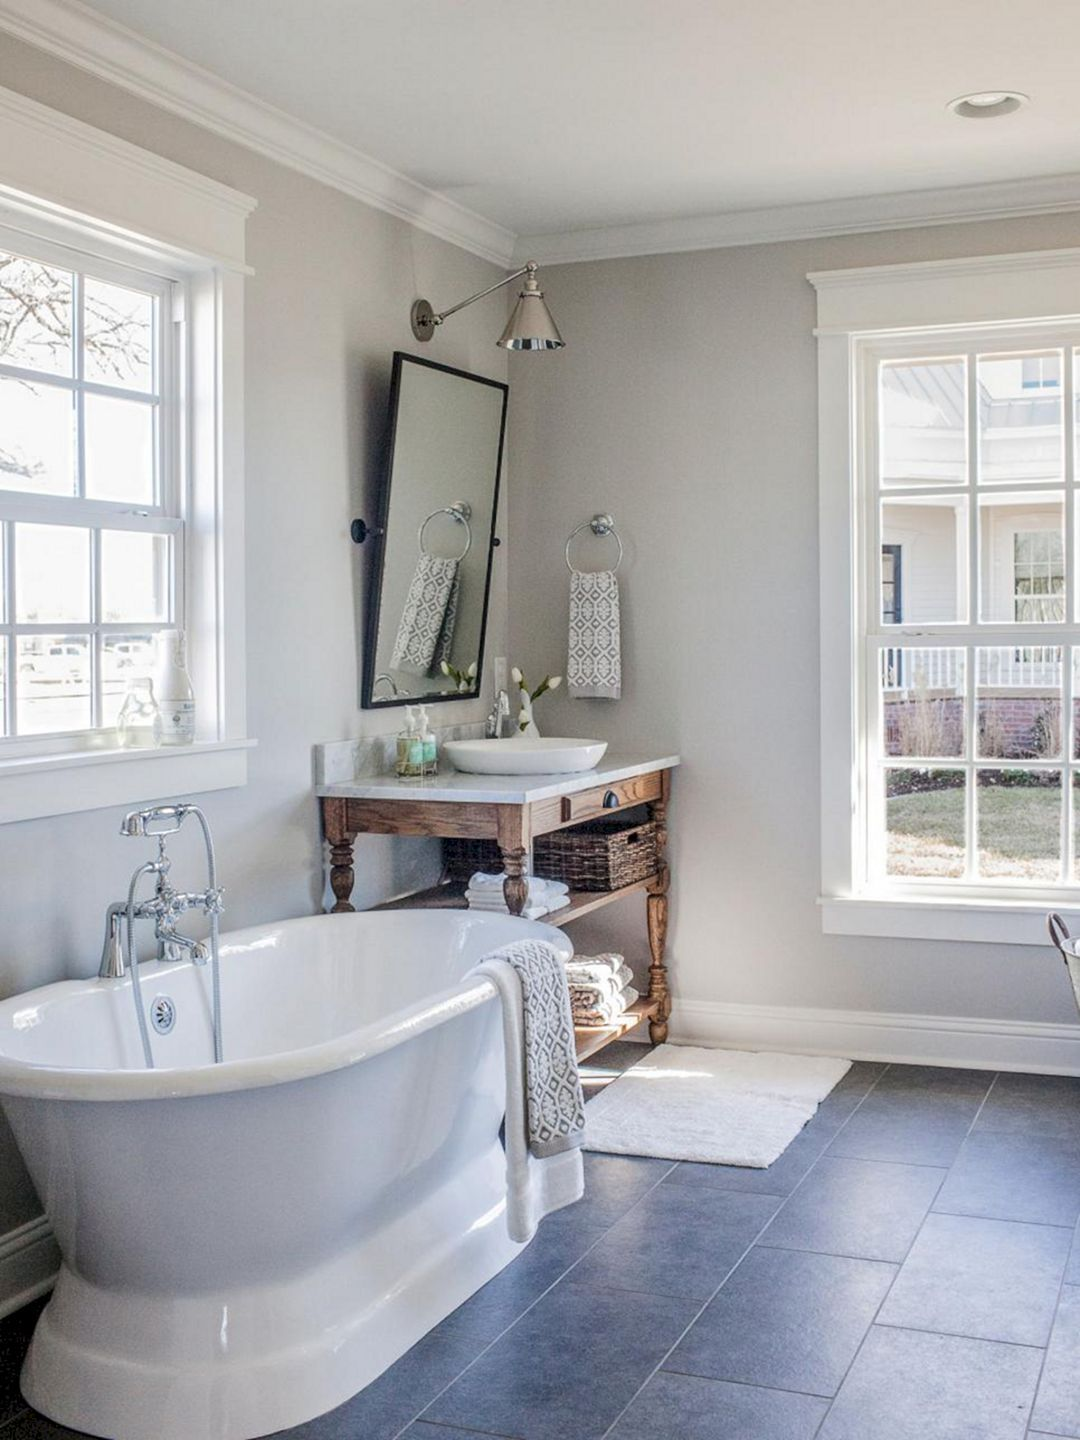 top 10 fixer upper bathrooms daily dose of style - Fixer Upper Bathroom